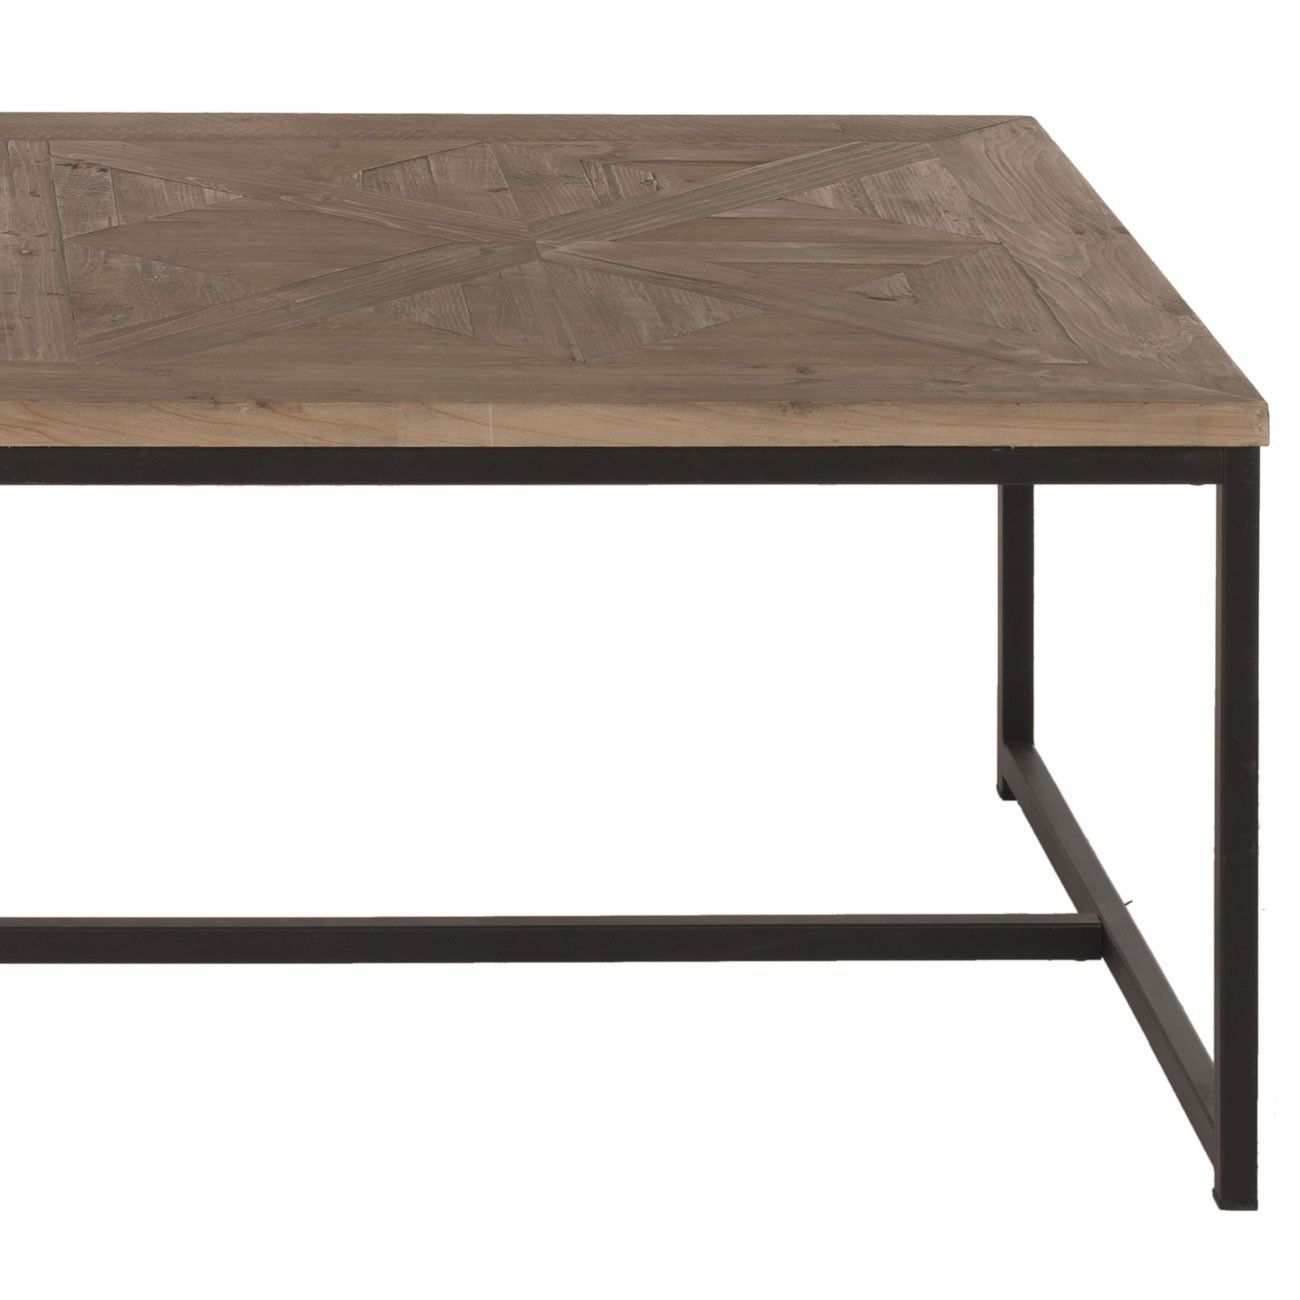 Table Metal Blanc Contemporary Coffee Table Wooden Metal Rectangular Jules